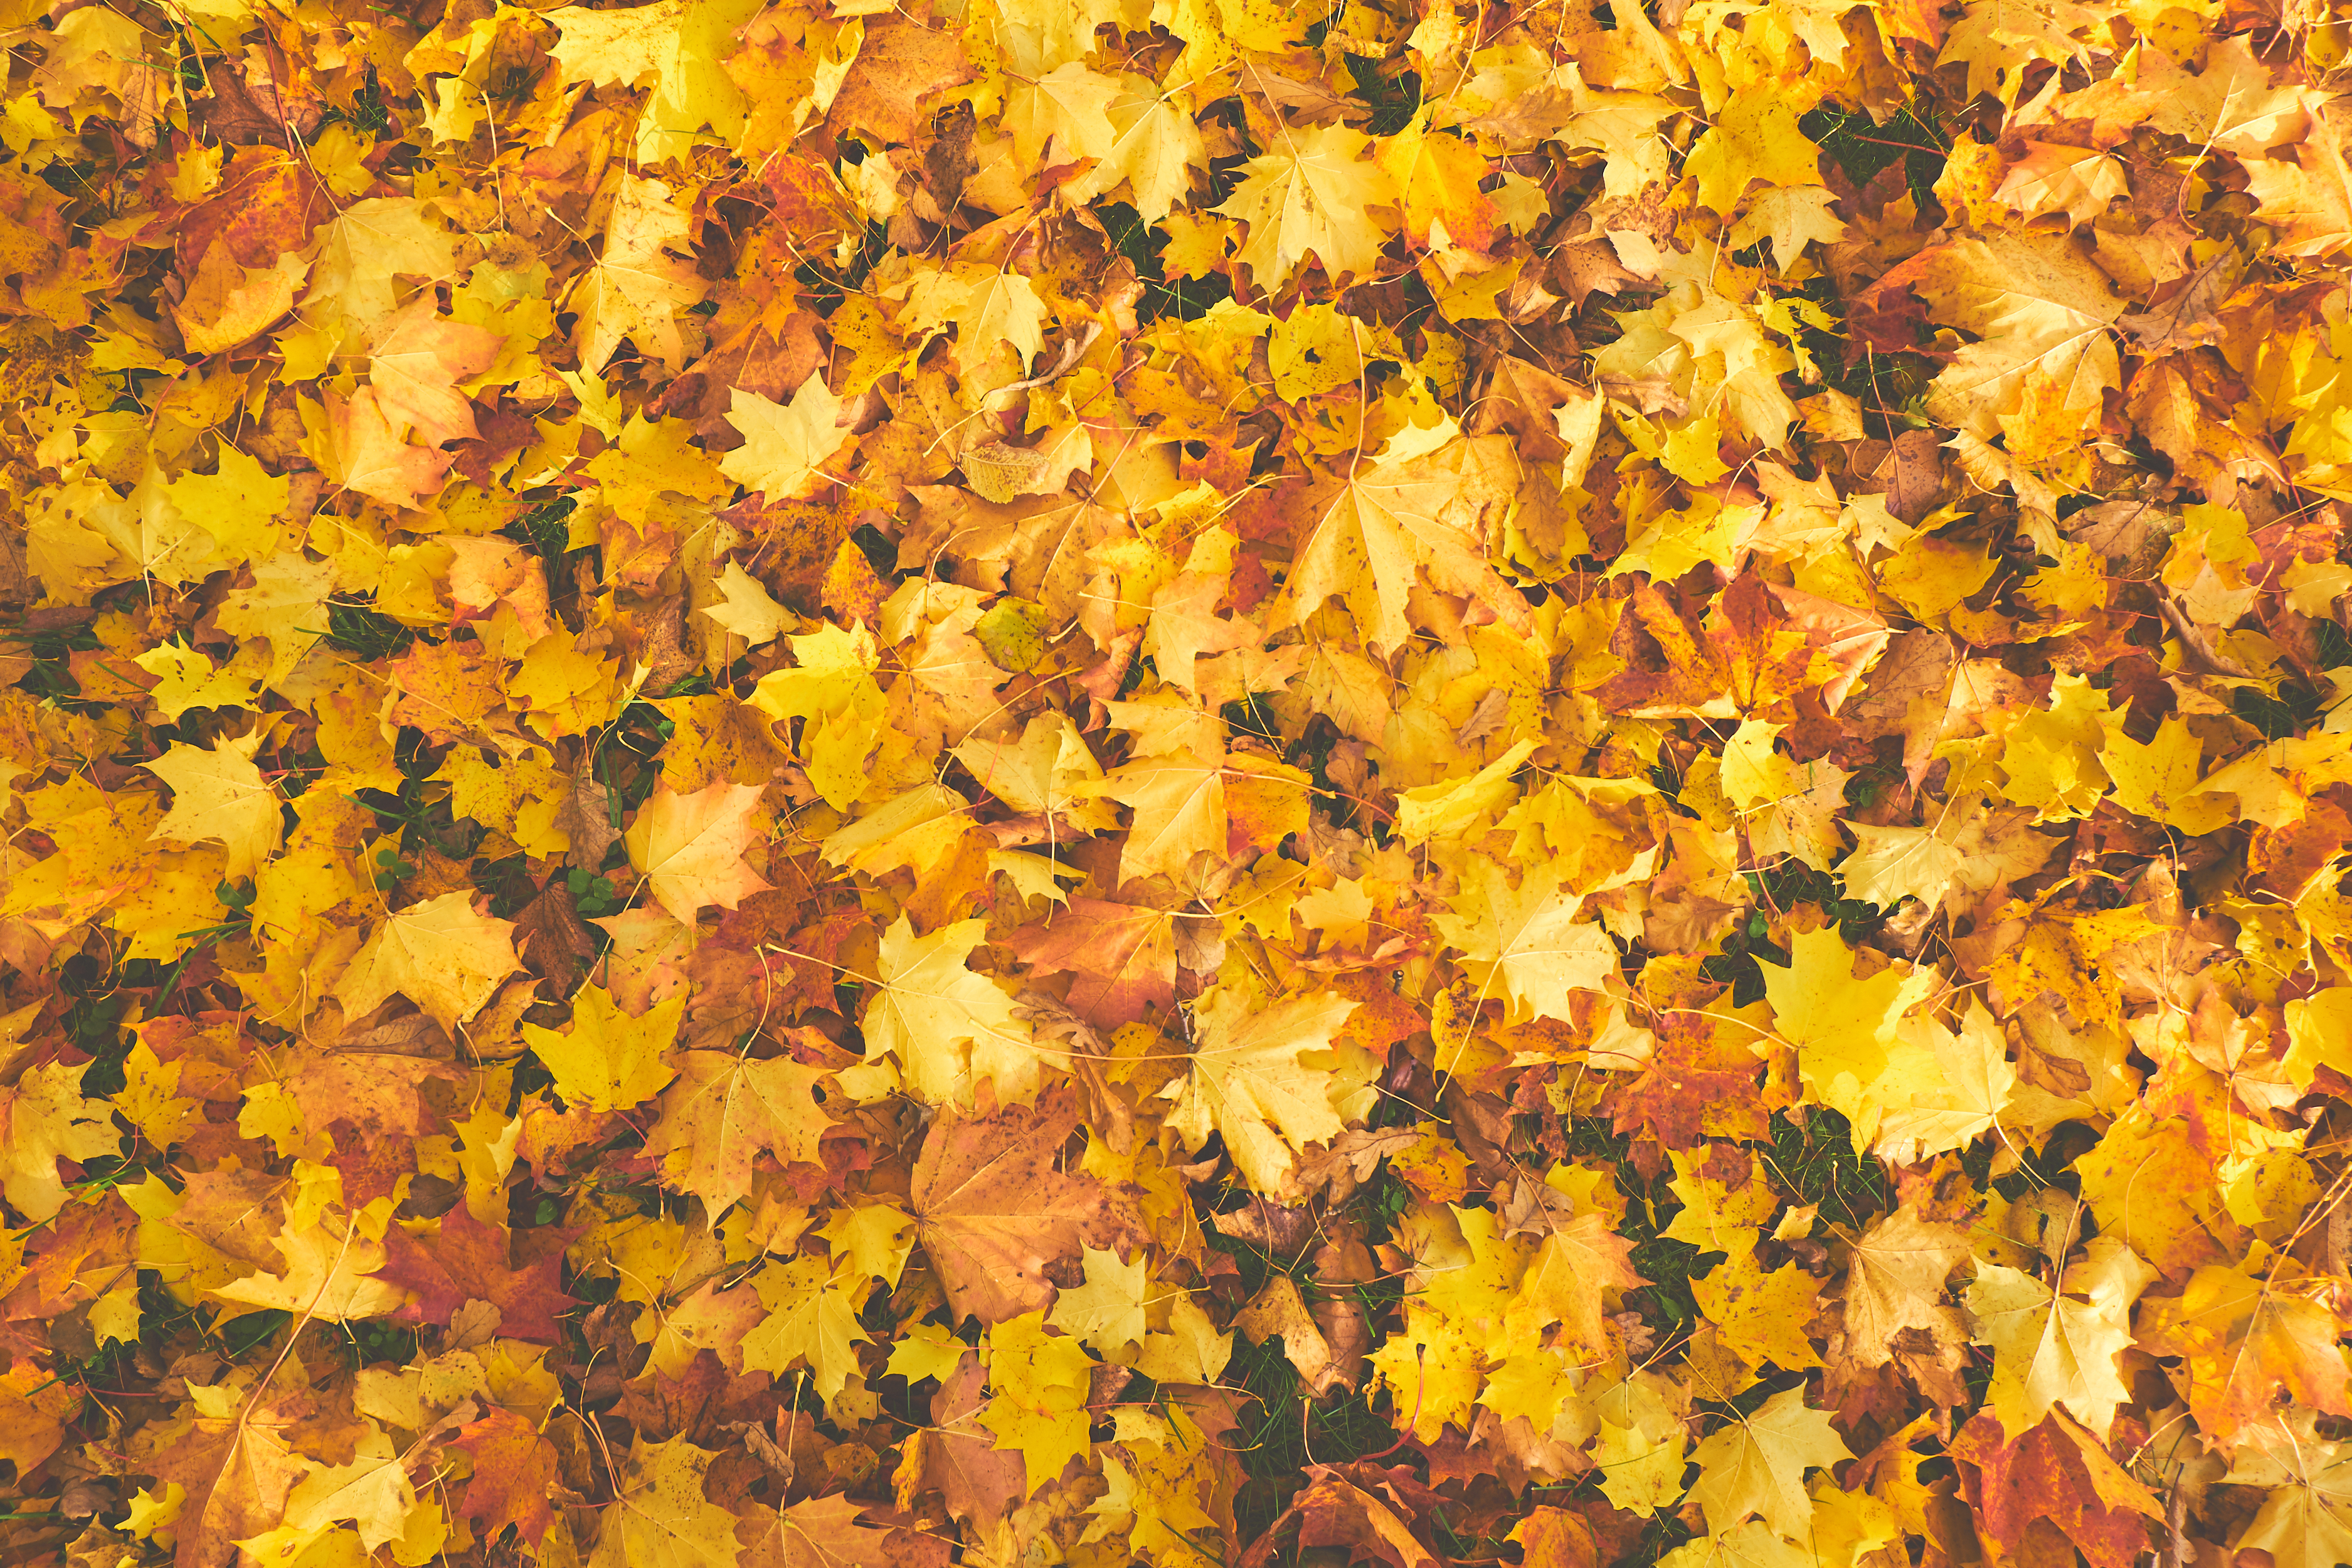 Free Fall Wallpaper Apps 1000 Interesting Fall Leaves Photos 183 Pexels 183 Free Stock